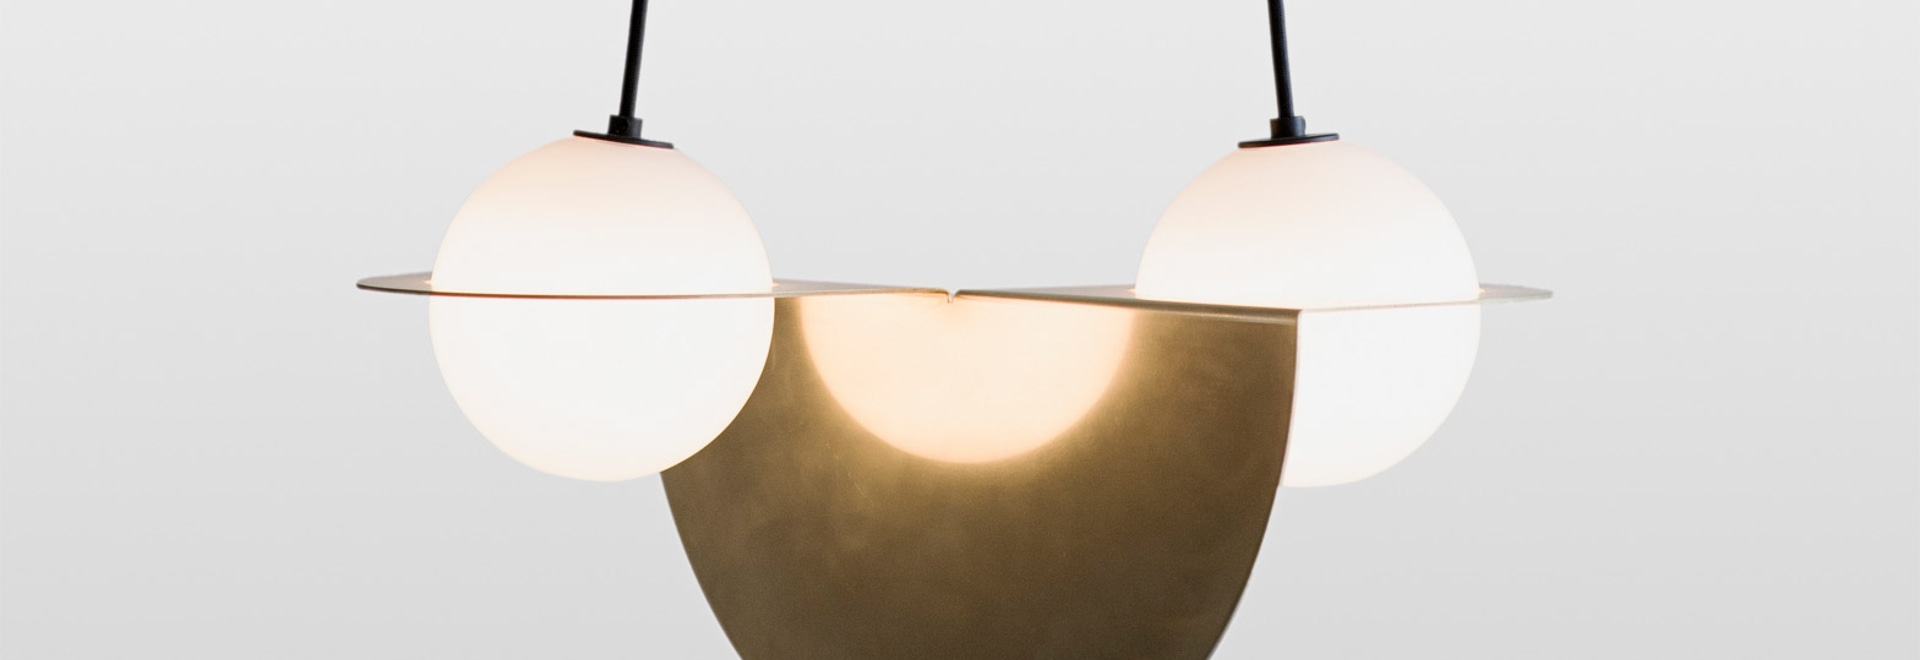 Lambert & Fils puts a spin on traditional globe pendants with Laurent lighting collection